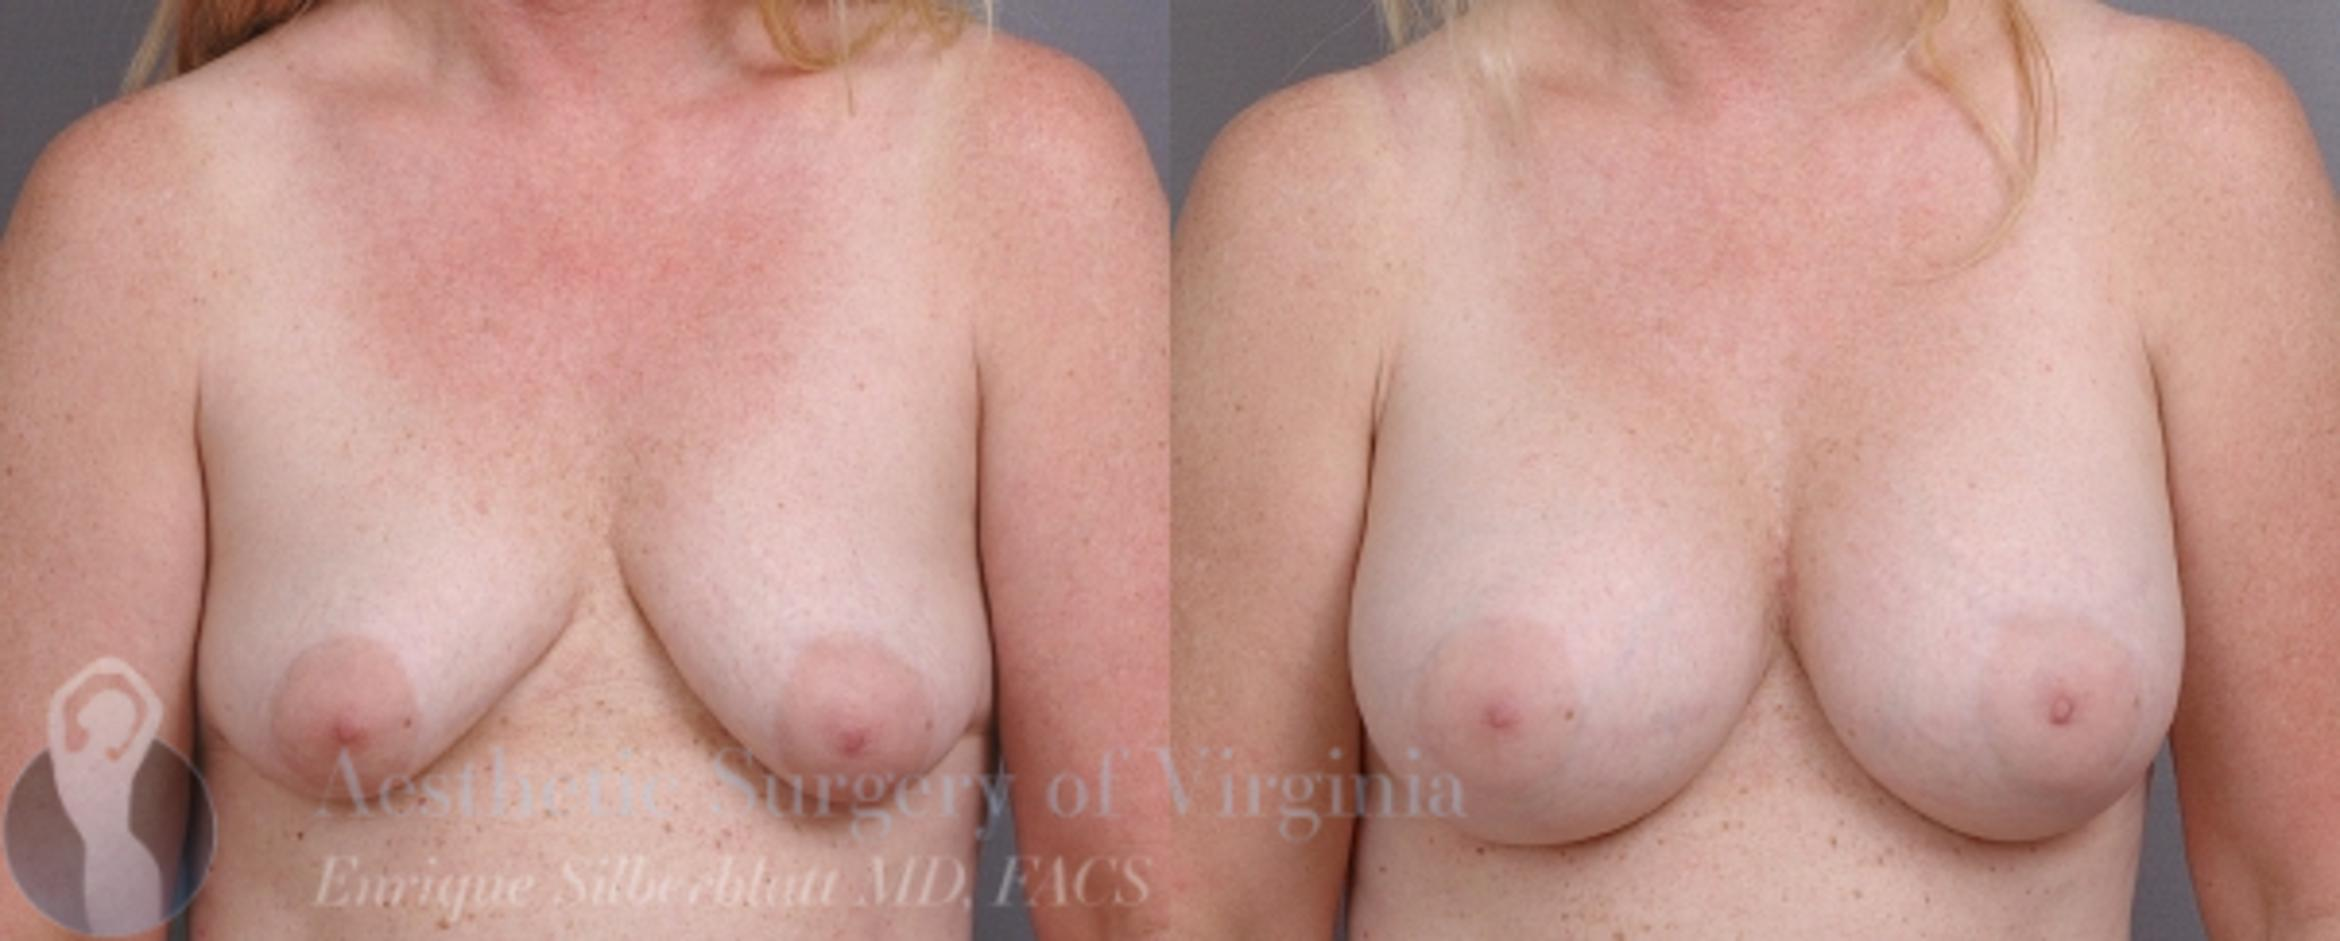 Breast Augmentation Case 9 Before & After View #1 | Roanoke, VA | Aesthetic Surgery of Virginia: Enrique Silberblatt, MD